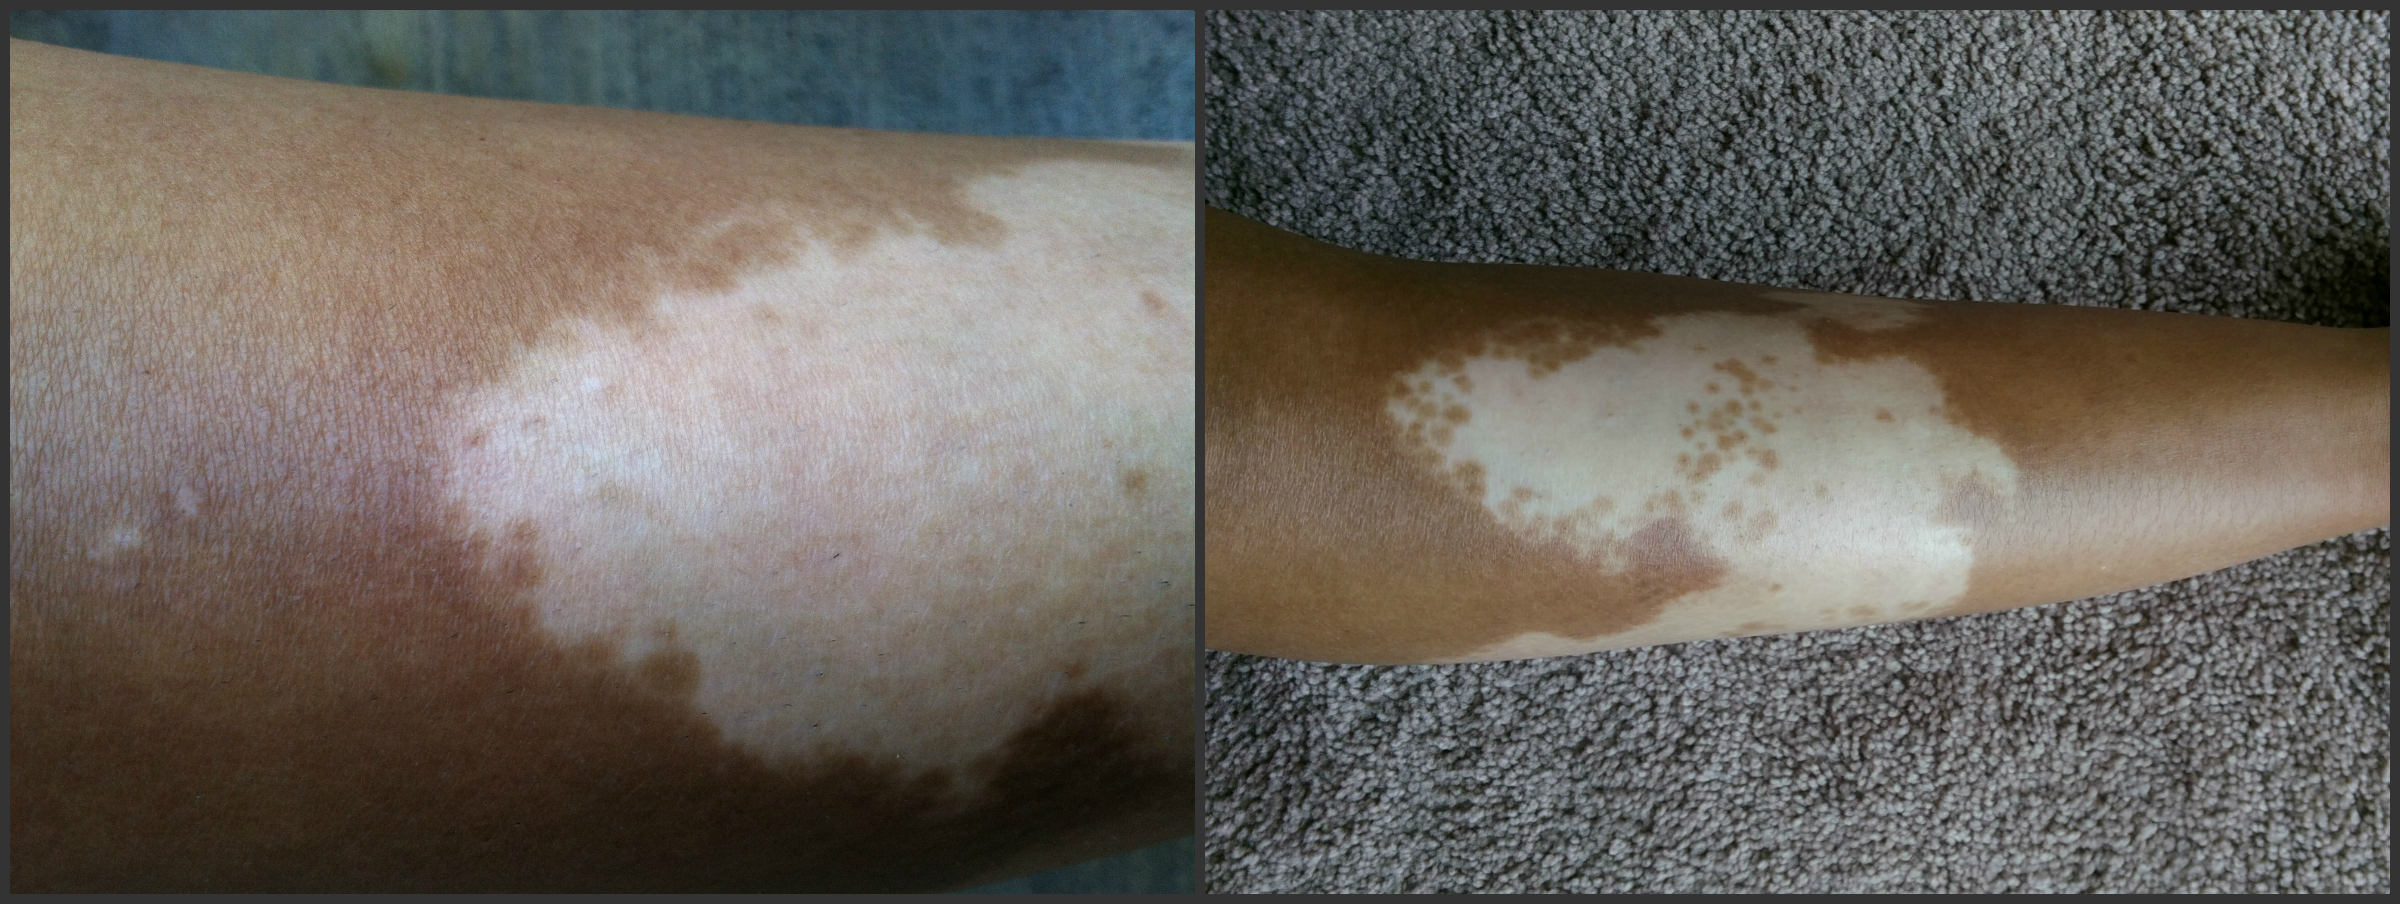 Right Shin Before And After N